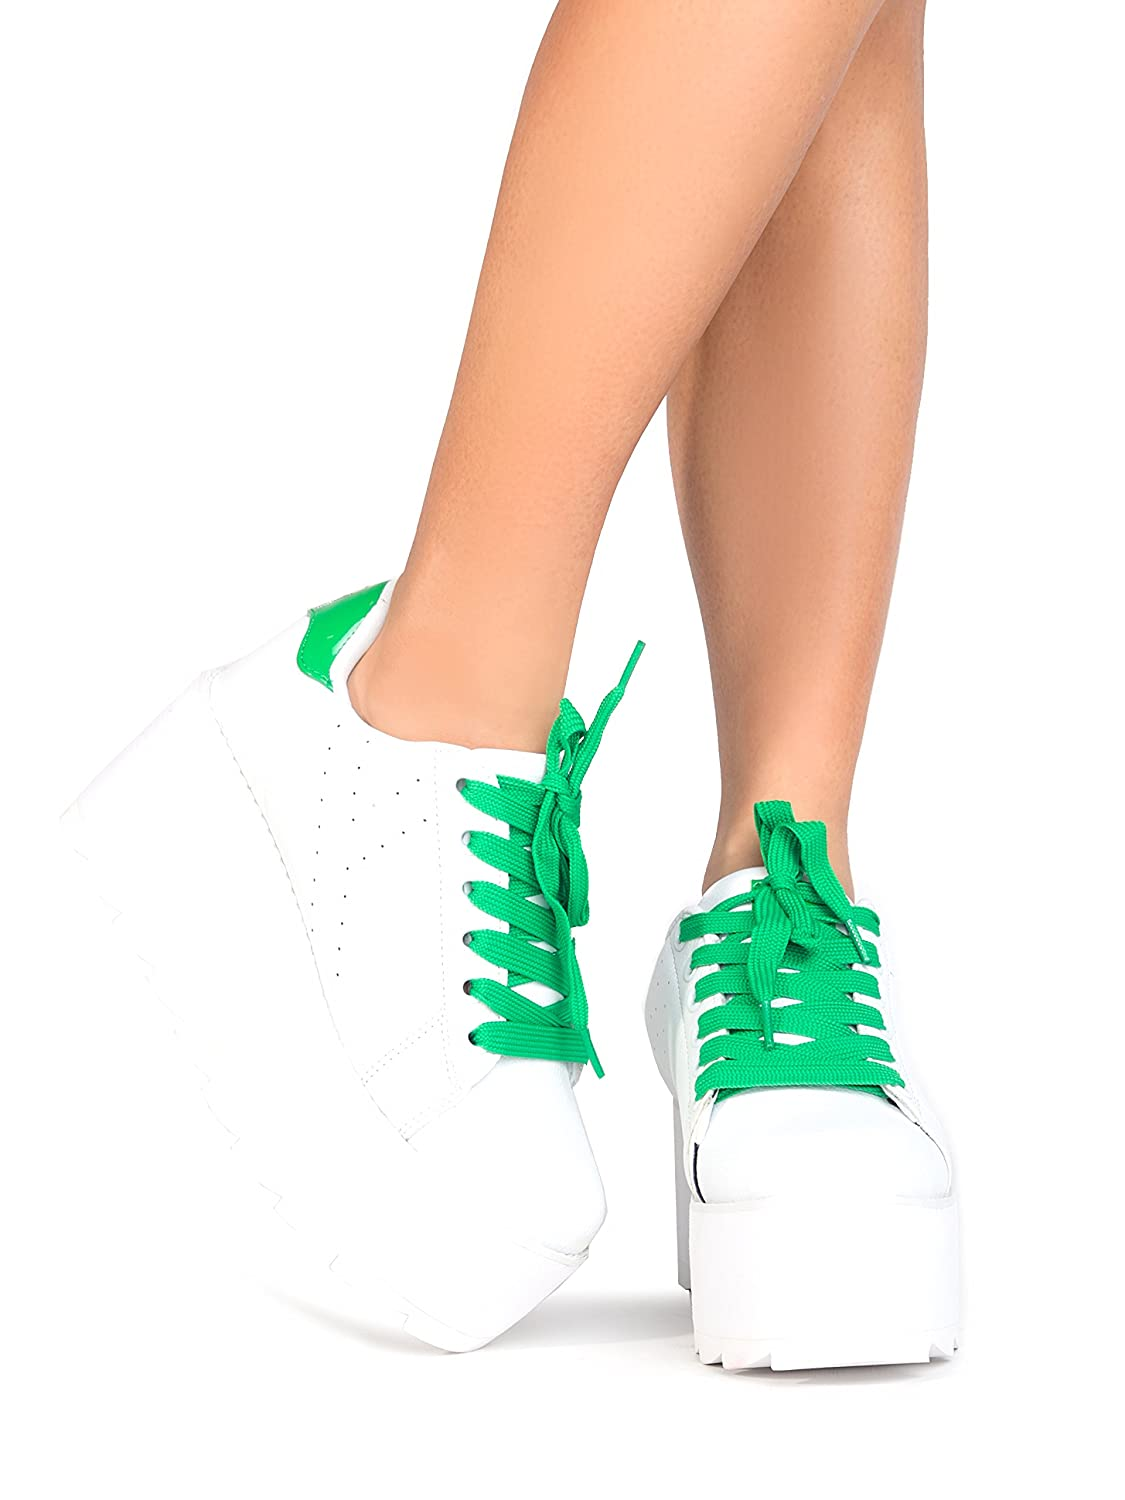 YRU Lala High Casual Platform Sneaker - High Lala Rave Flatform Closed Round Toe Creepers B07BFJWVRY 7 M US|Green White Strype 00fd16